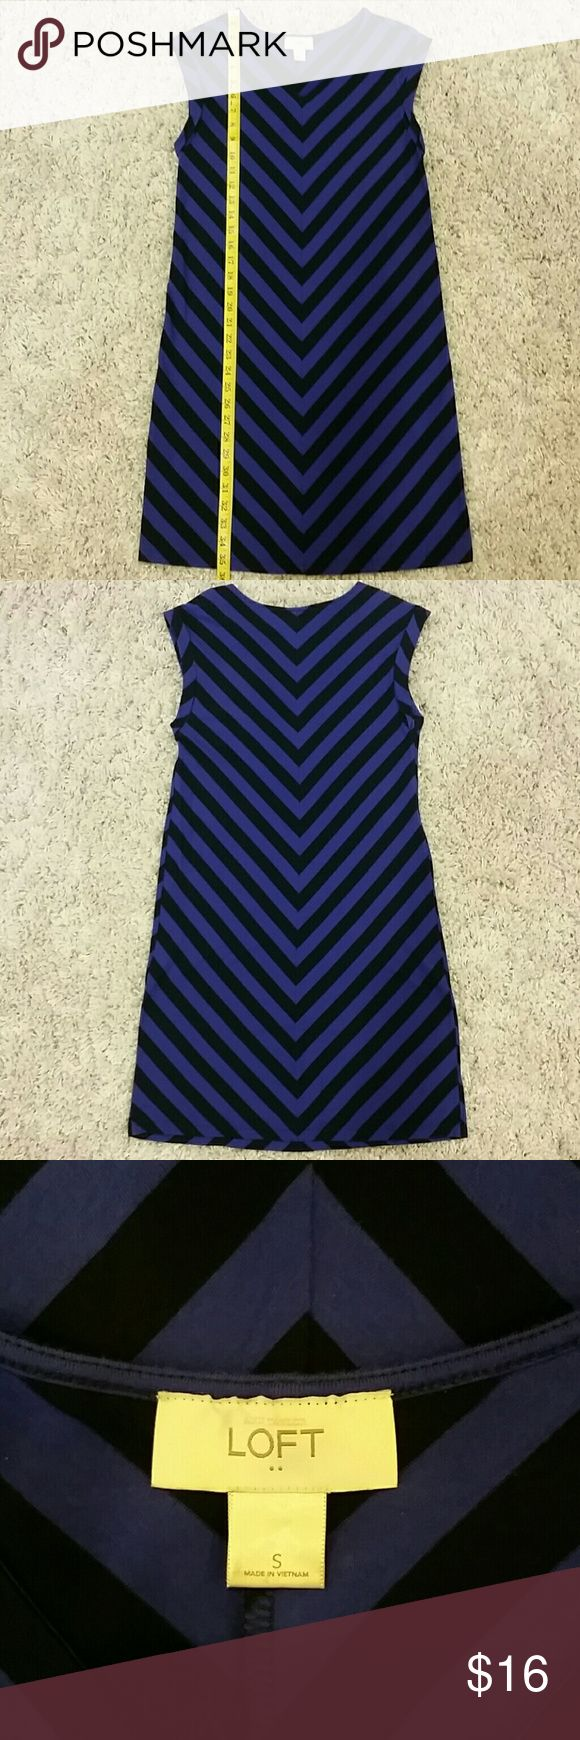 Loft chevron dress Bluish-purple and dark navy chevron patterned dress. In great condition! Stretchy knit. Cute with leggings and long cardigan in the fall/winter, and great with sandals in the summer! LOFT Dresses Mini